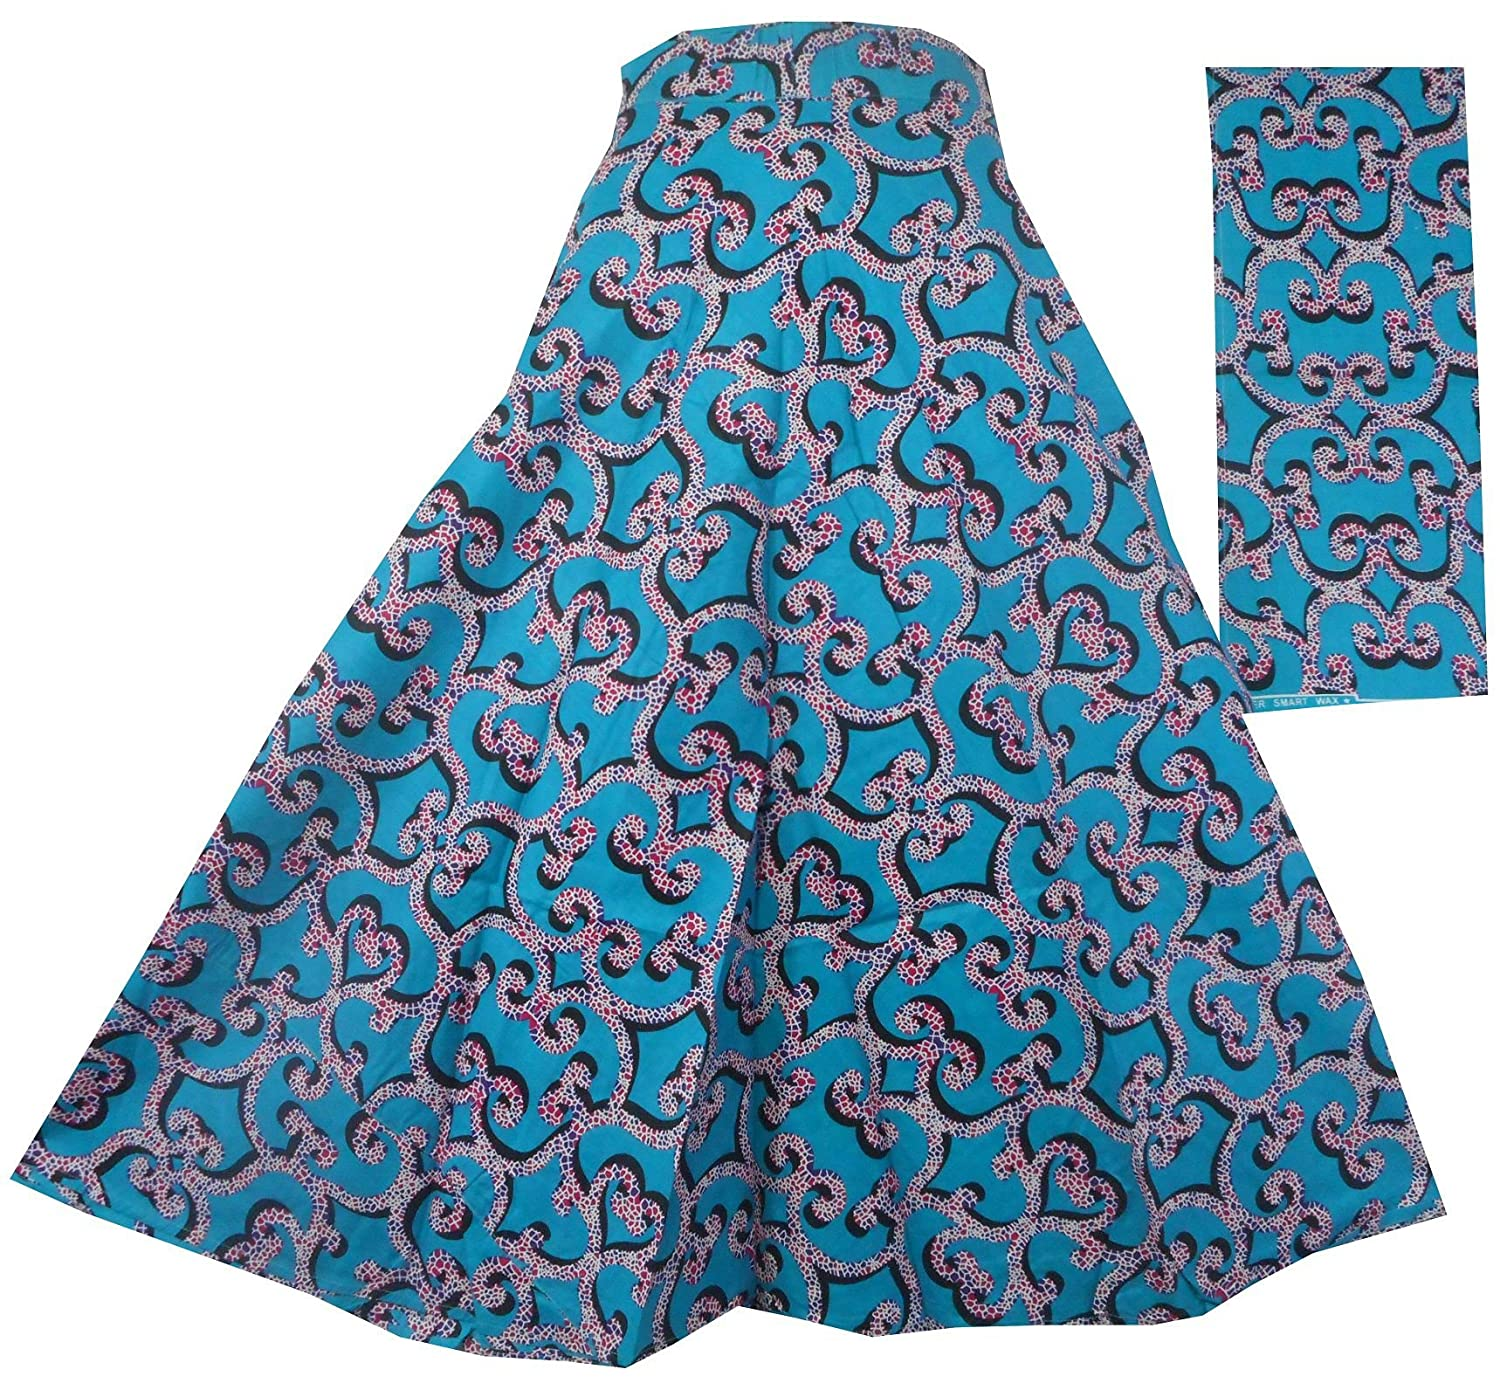 Decoraapparel Fatima Wrap Around Skirt Long Opaque Fully Adjustable Printed Skirt Without Slit